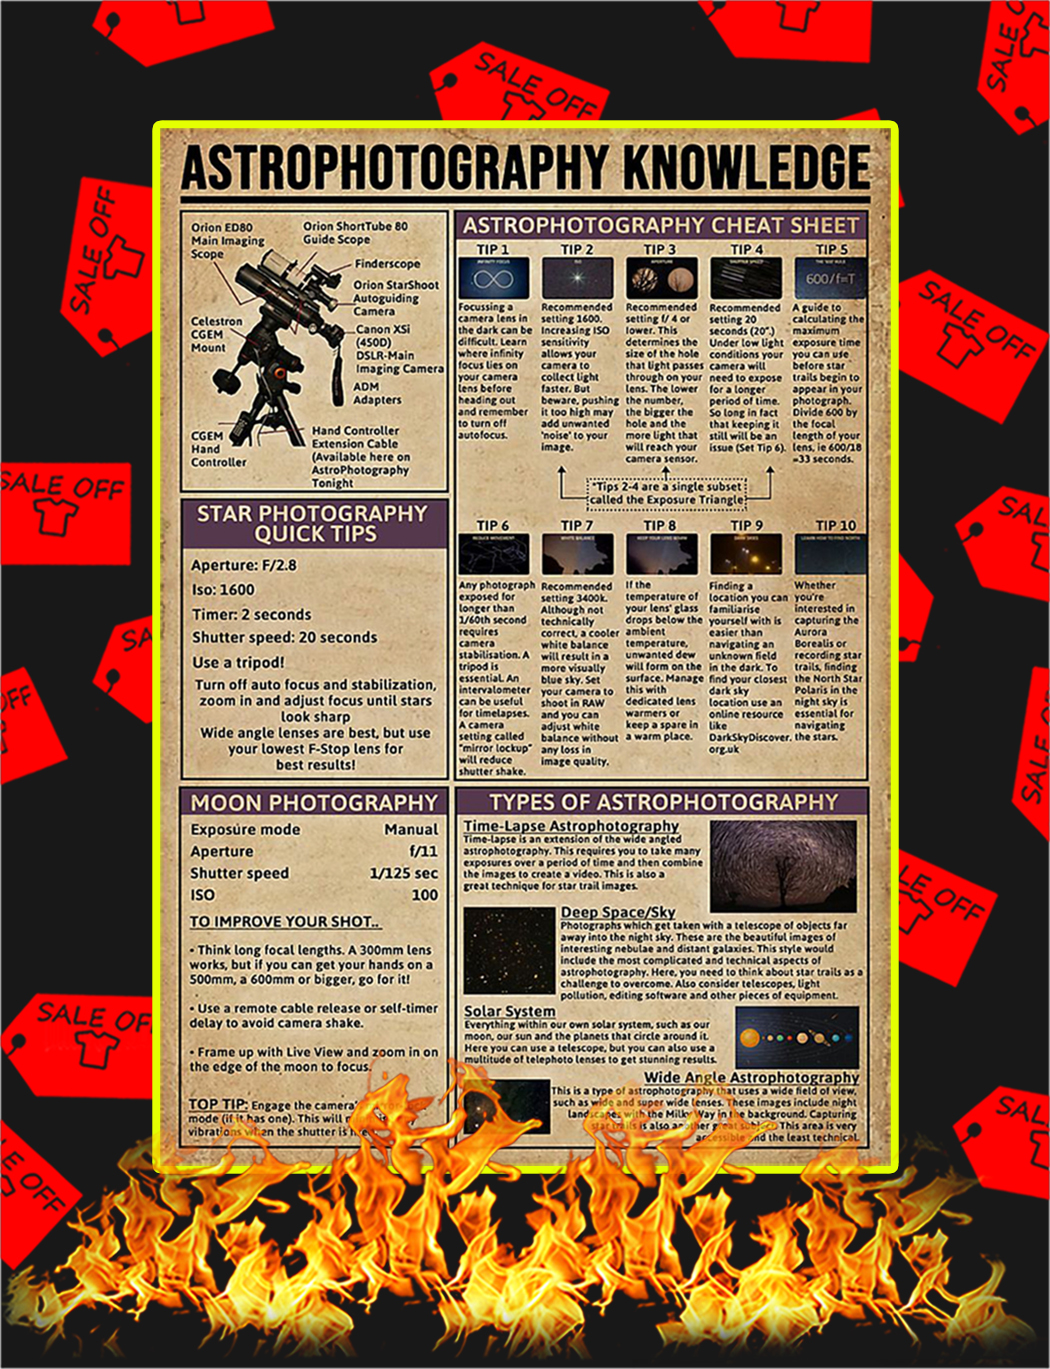 Astrophotography Knowledge Poster - A2